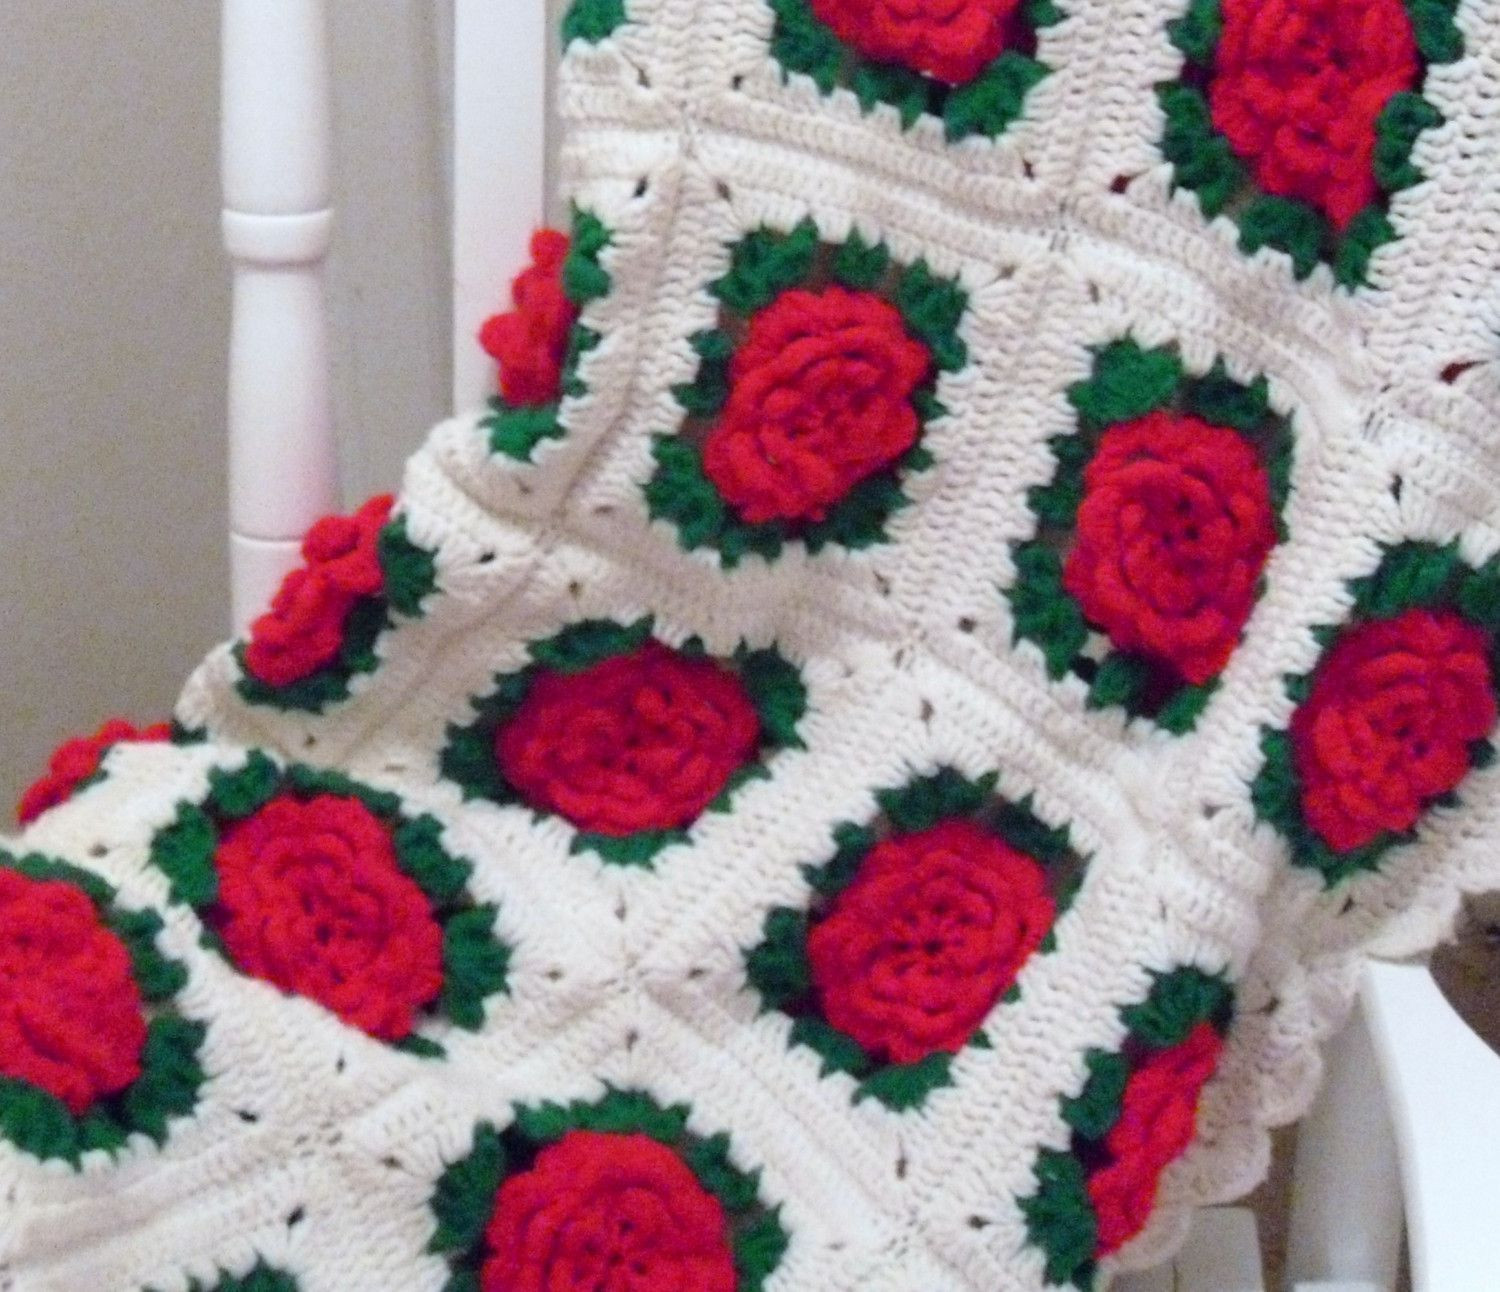 Free Crochet Afghan Patterns Best Of Free Crochet Afghan Patterns Of Fresh 44 Models Free Crochet Afghan Patterns